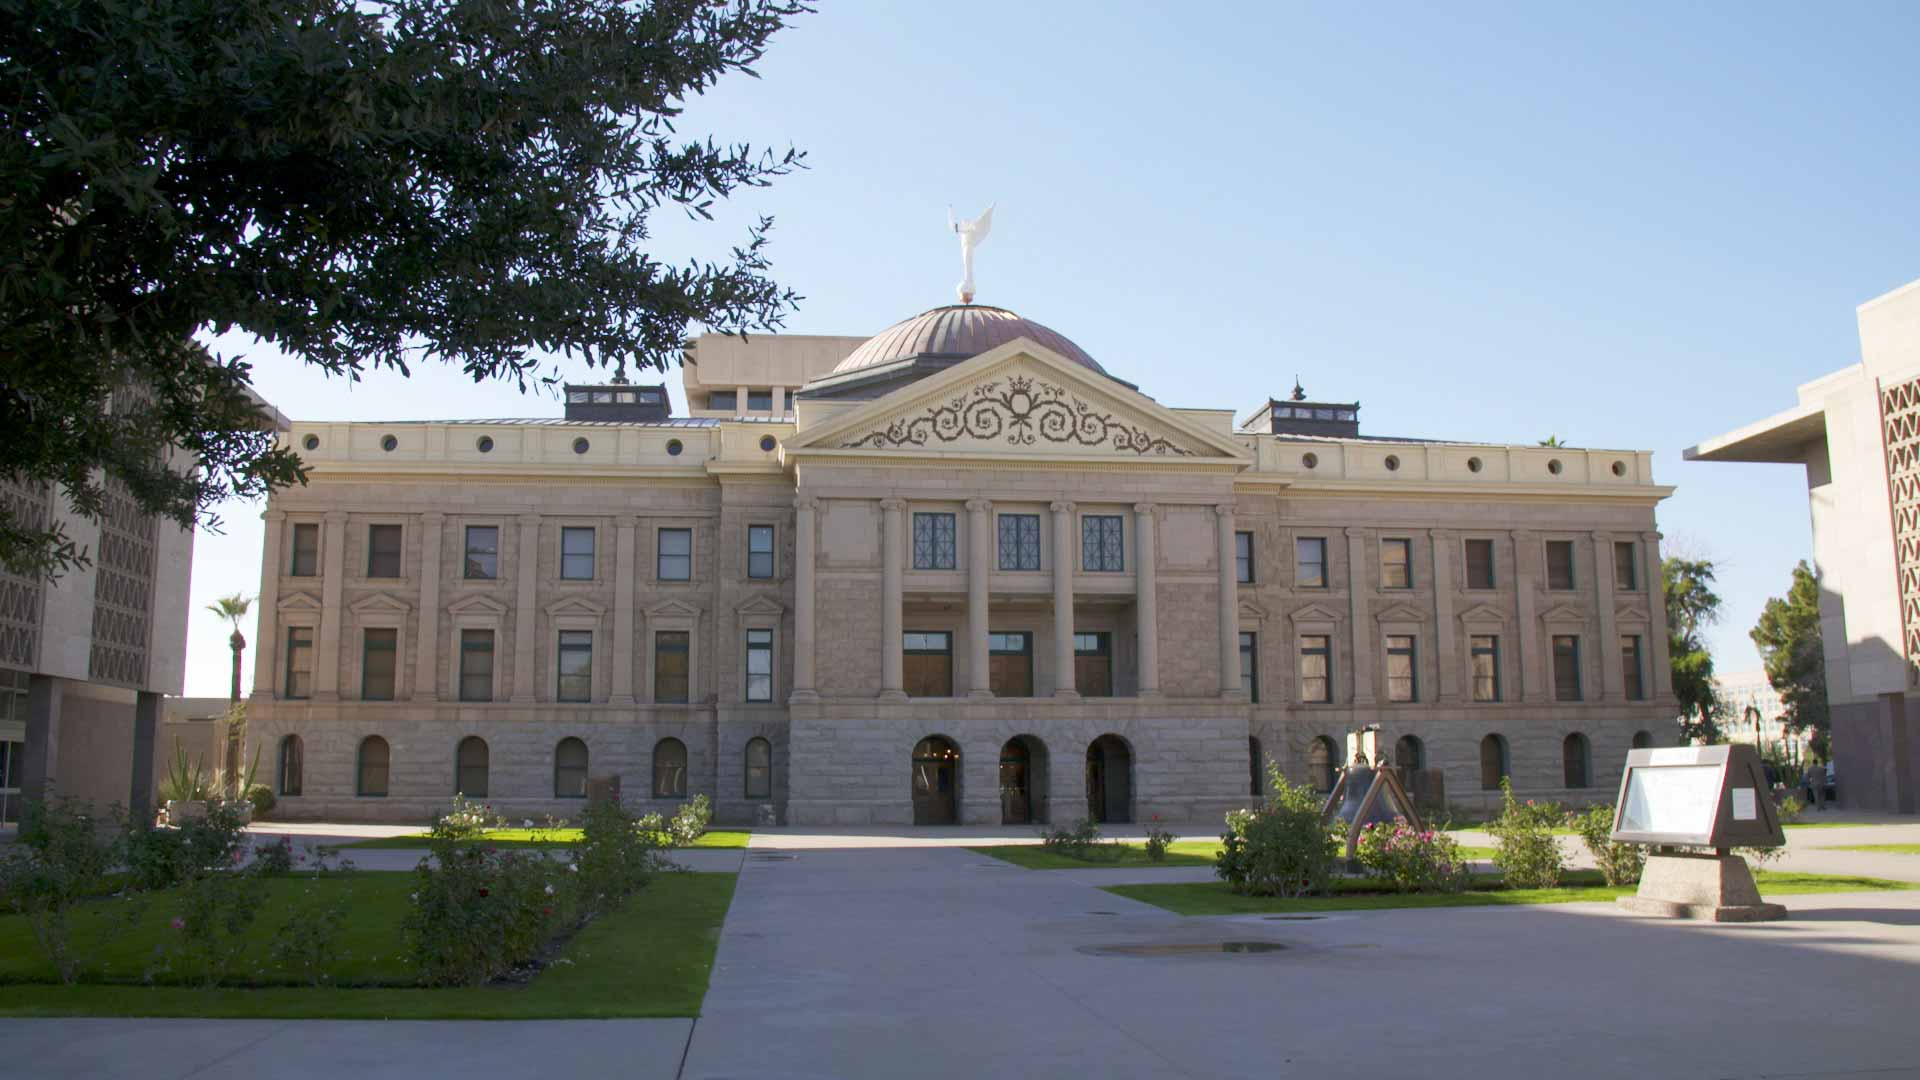 The Arizona Capitol Museum building at the State Capitol in Phoenix.